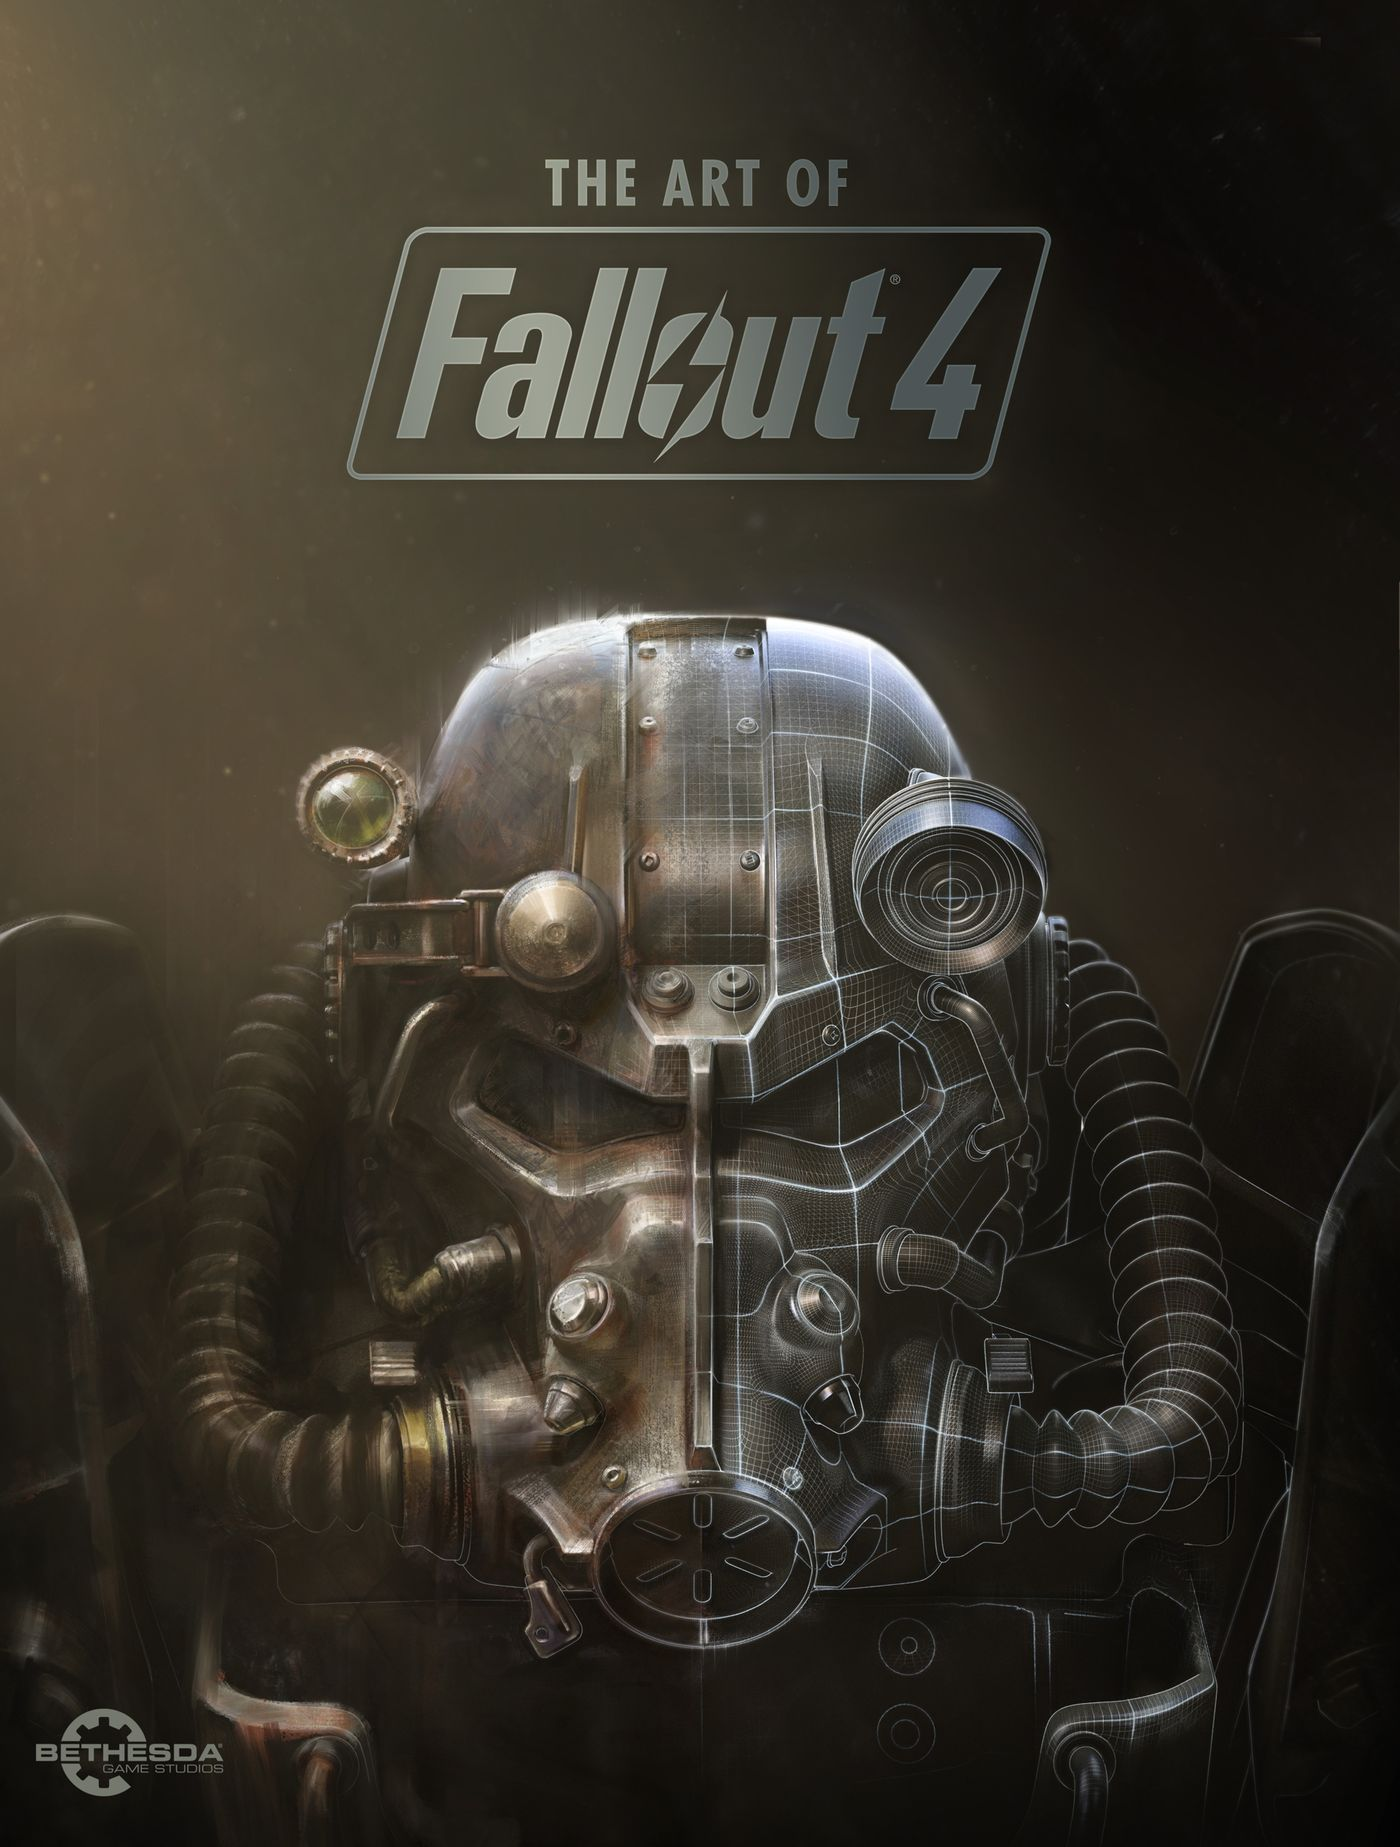 the-art-of-fallout-4.jpg